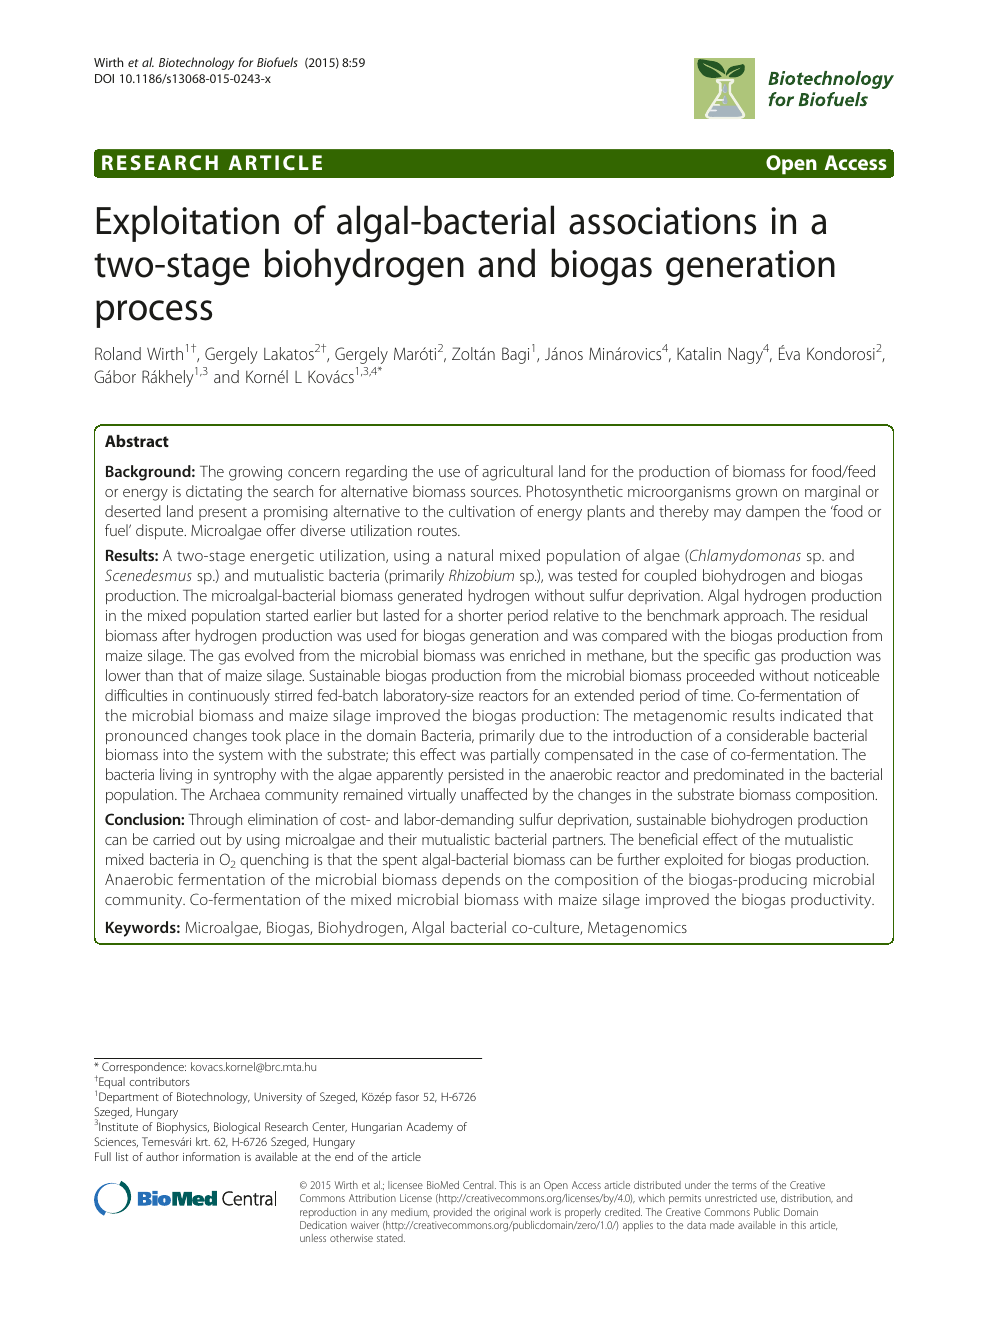 Exploitation of algal-bacterial associations in a two-stage